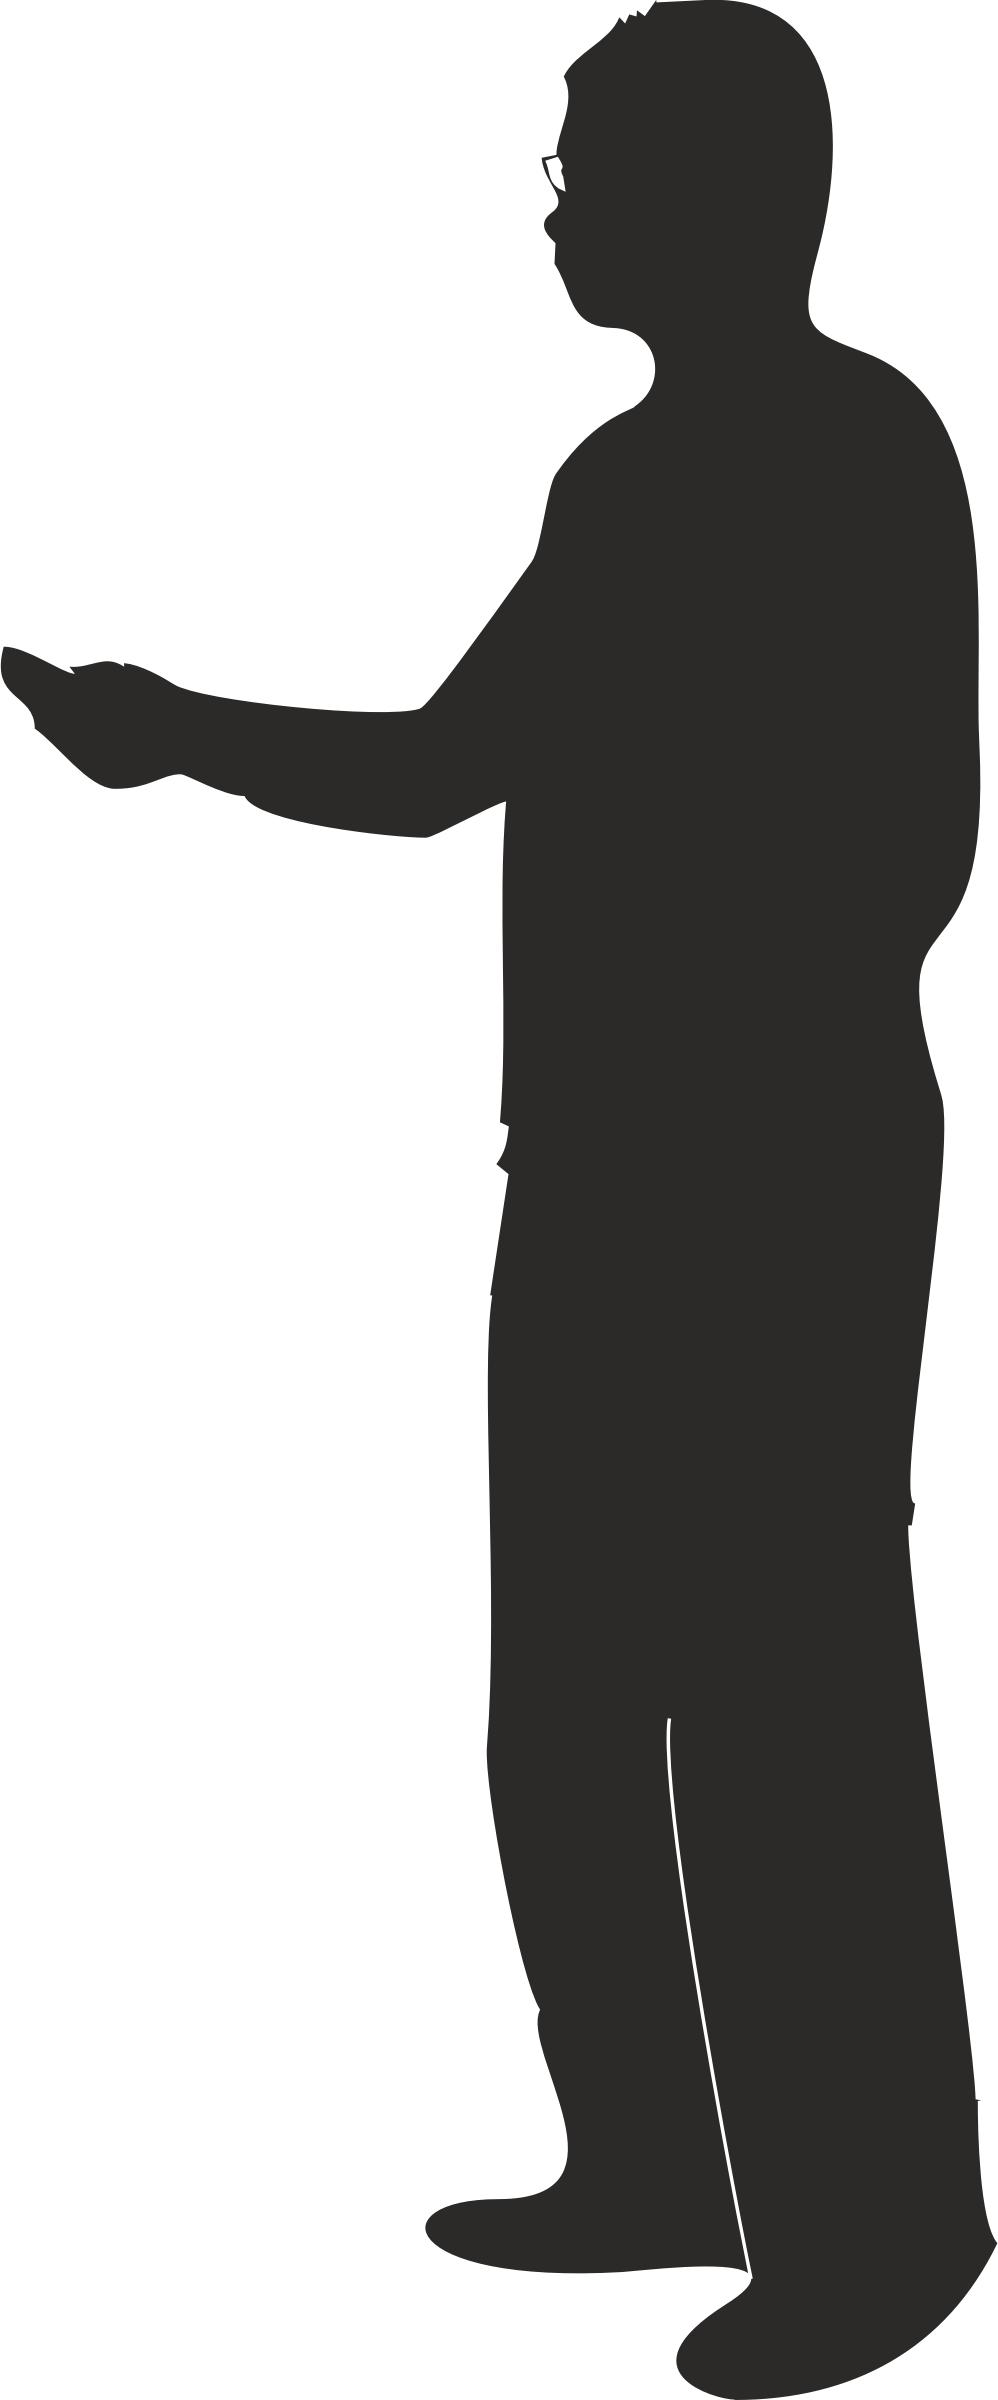 998x2400 Male Silhouette Presenting Or Pointing Icons Png